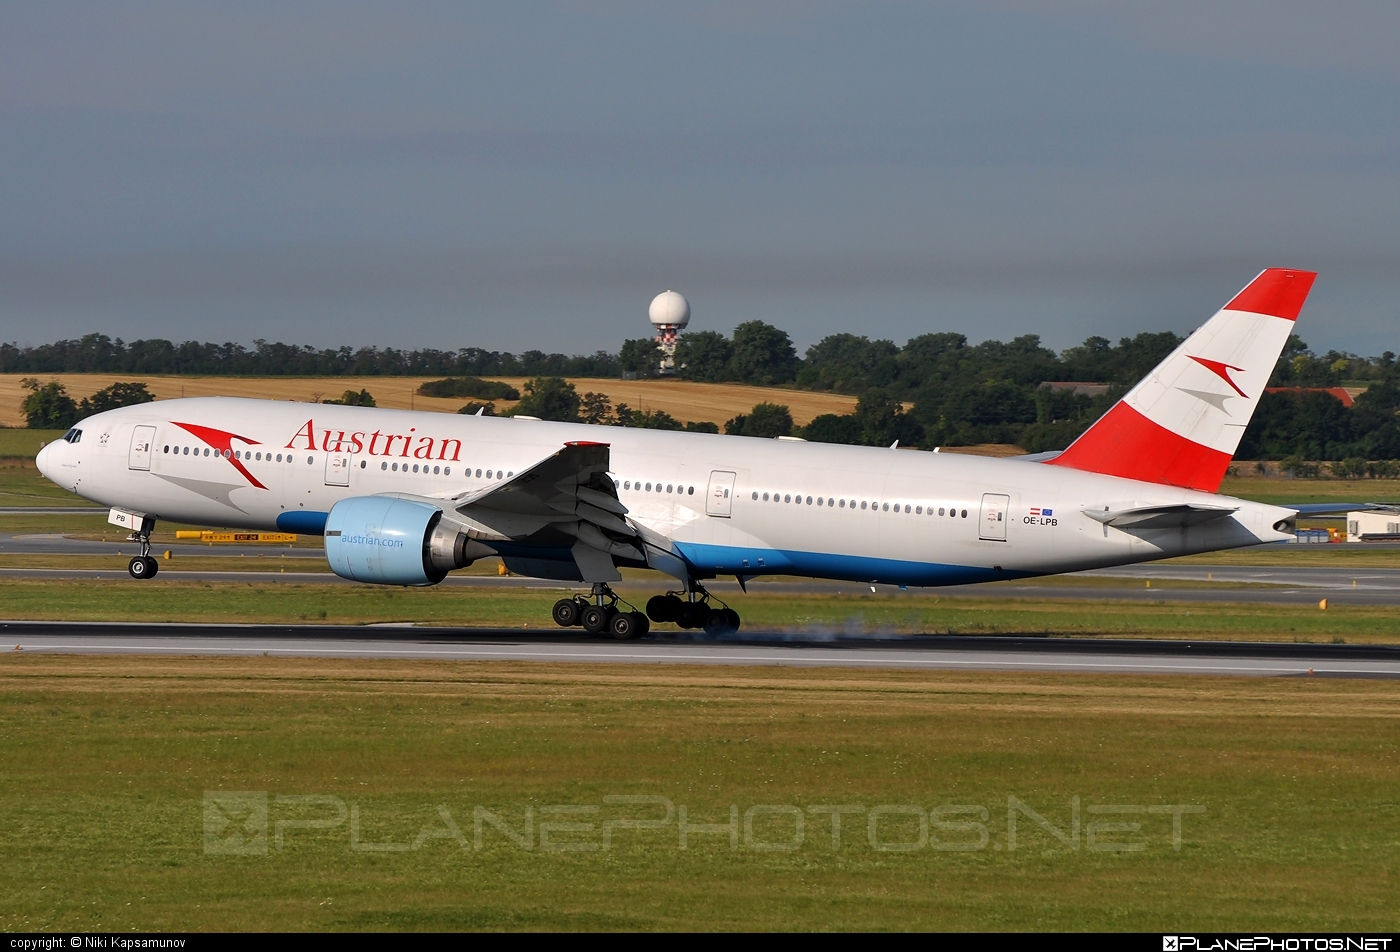 Boeing 777-200ER - OE-LPB operated by Austrian Airlines #b777 #b777er #boeing #boeing777 #tripleseven